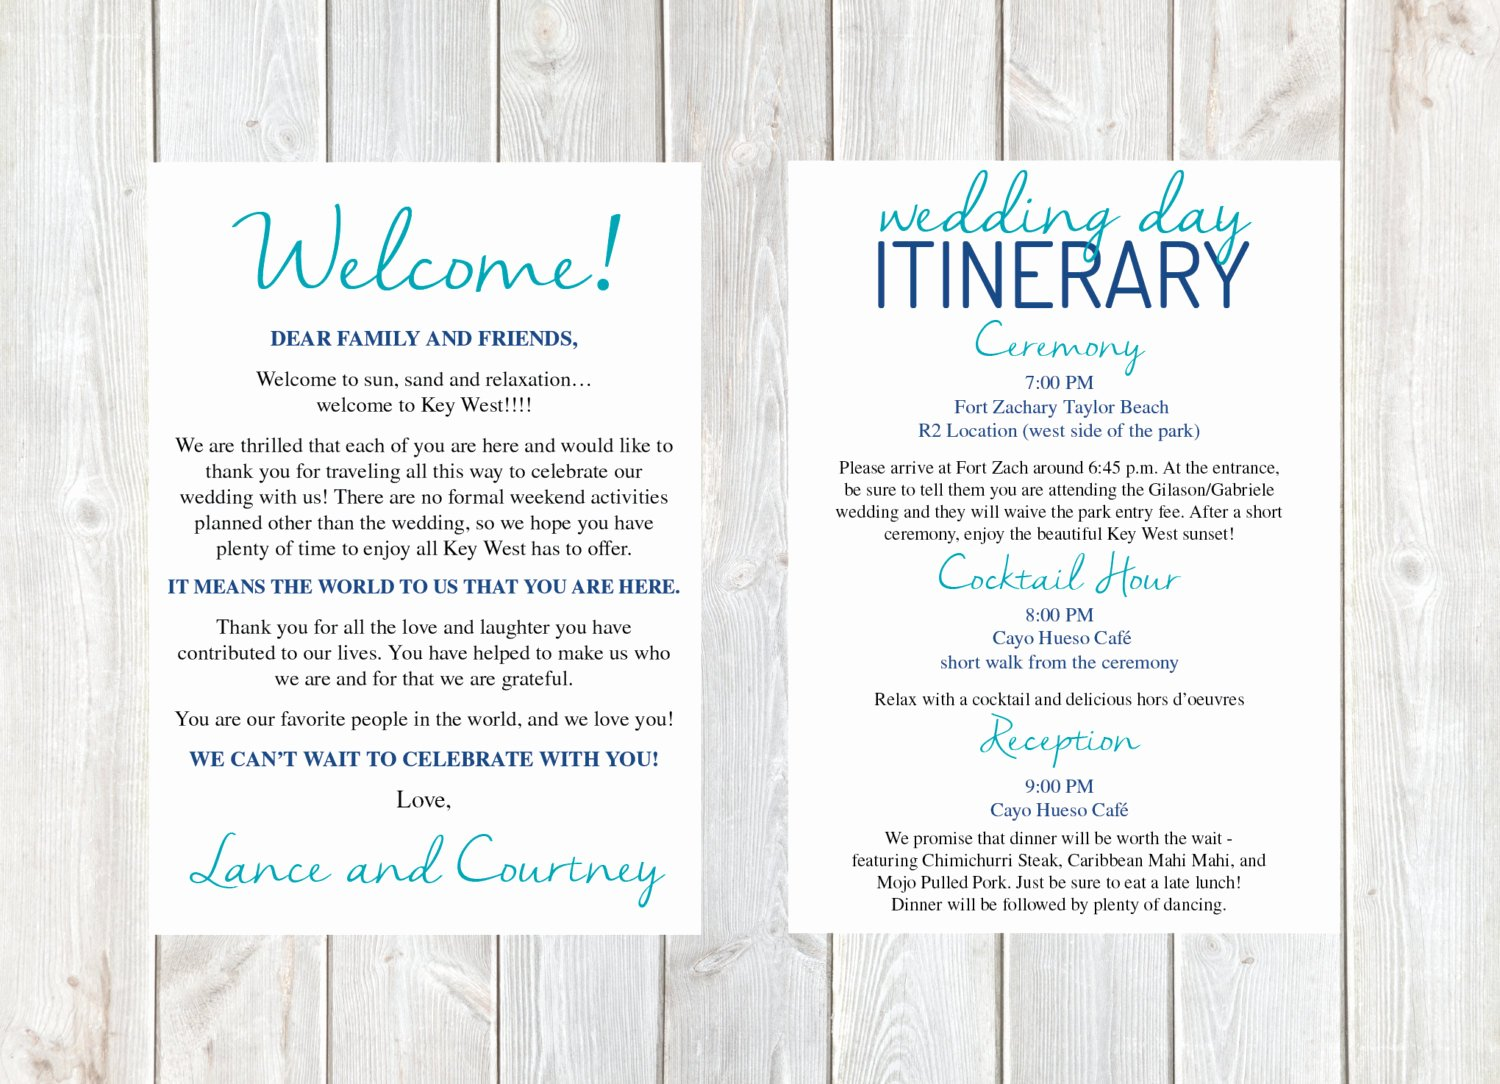 Wedding Welcome Letter Template Awesome Wel E Letter Wedding Wel E Letter Wedding Itinerary